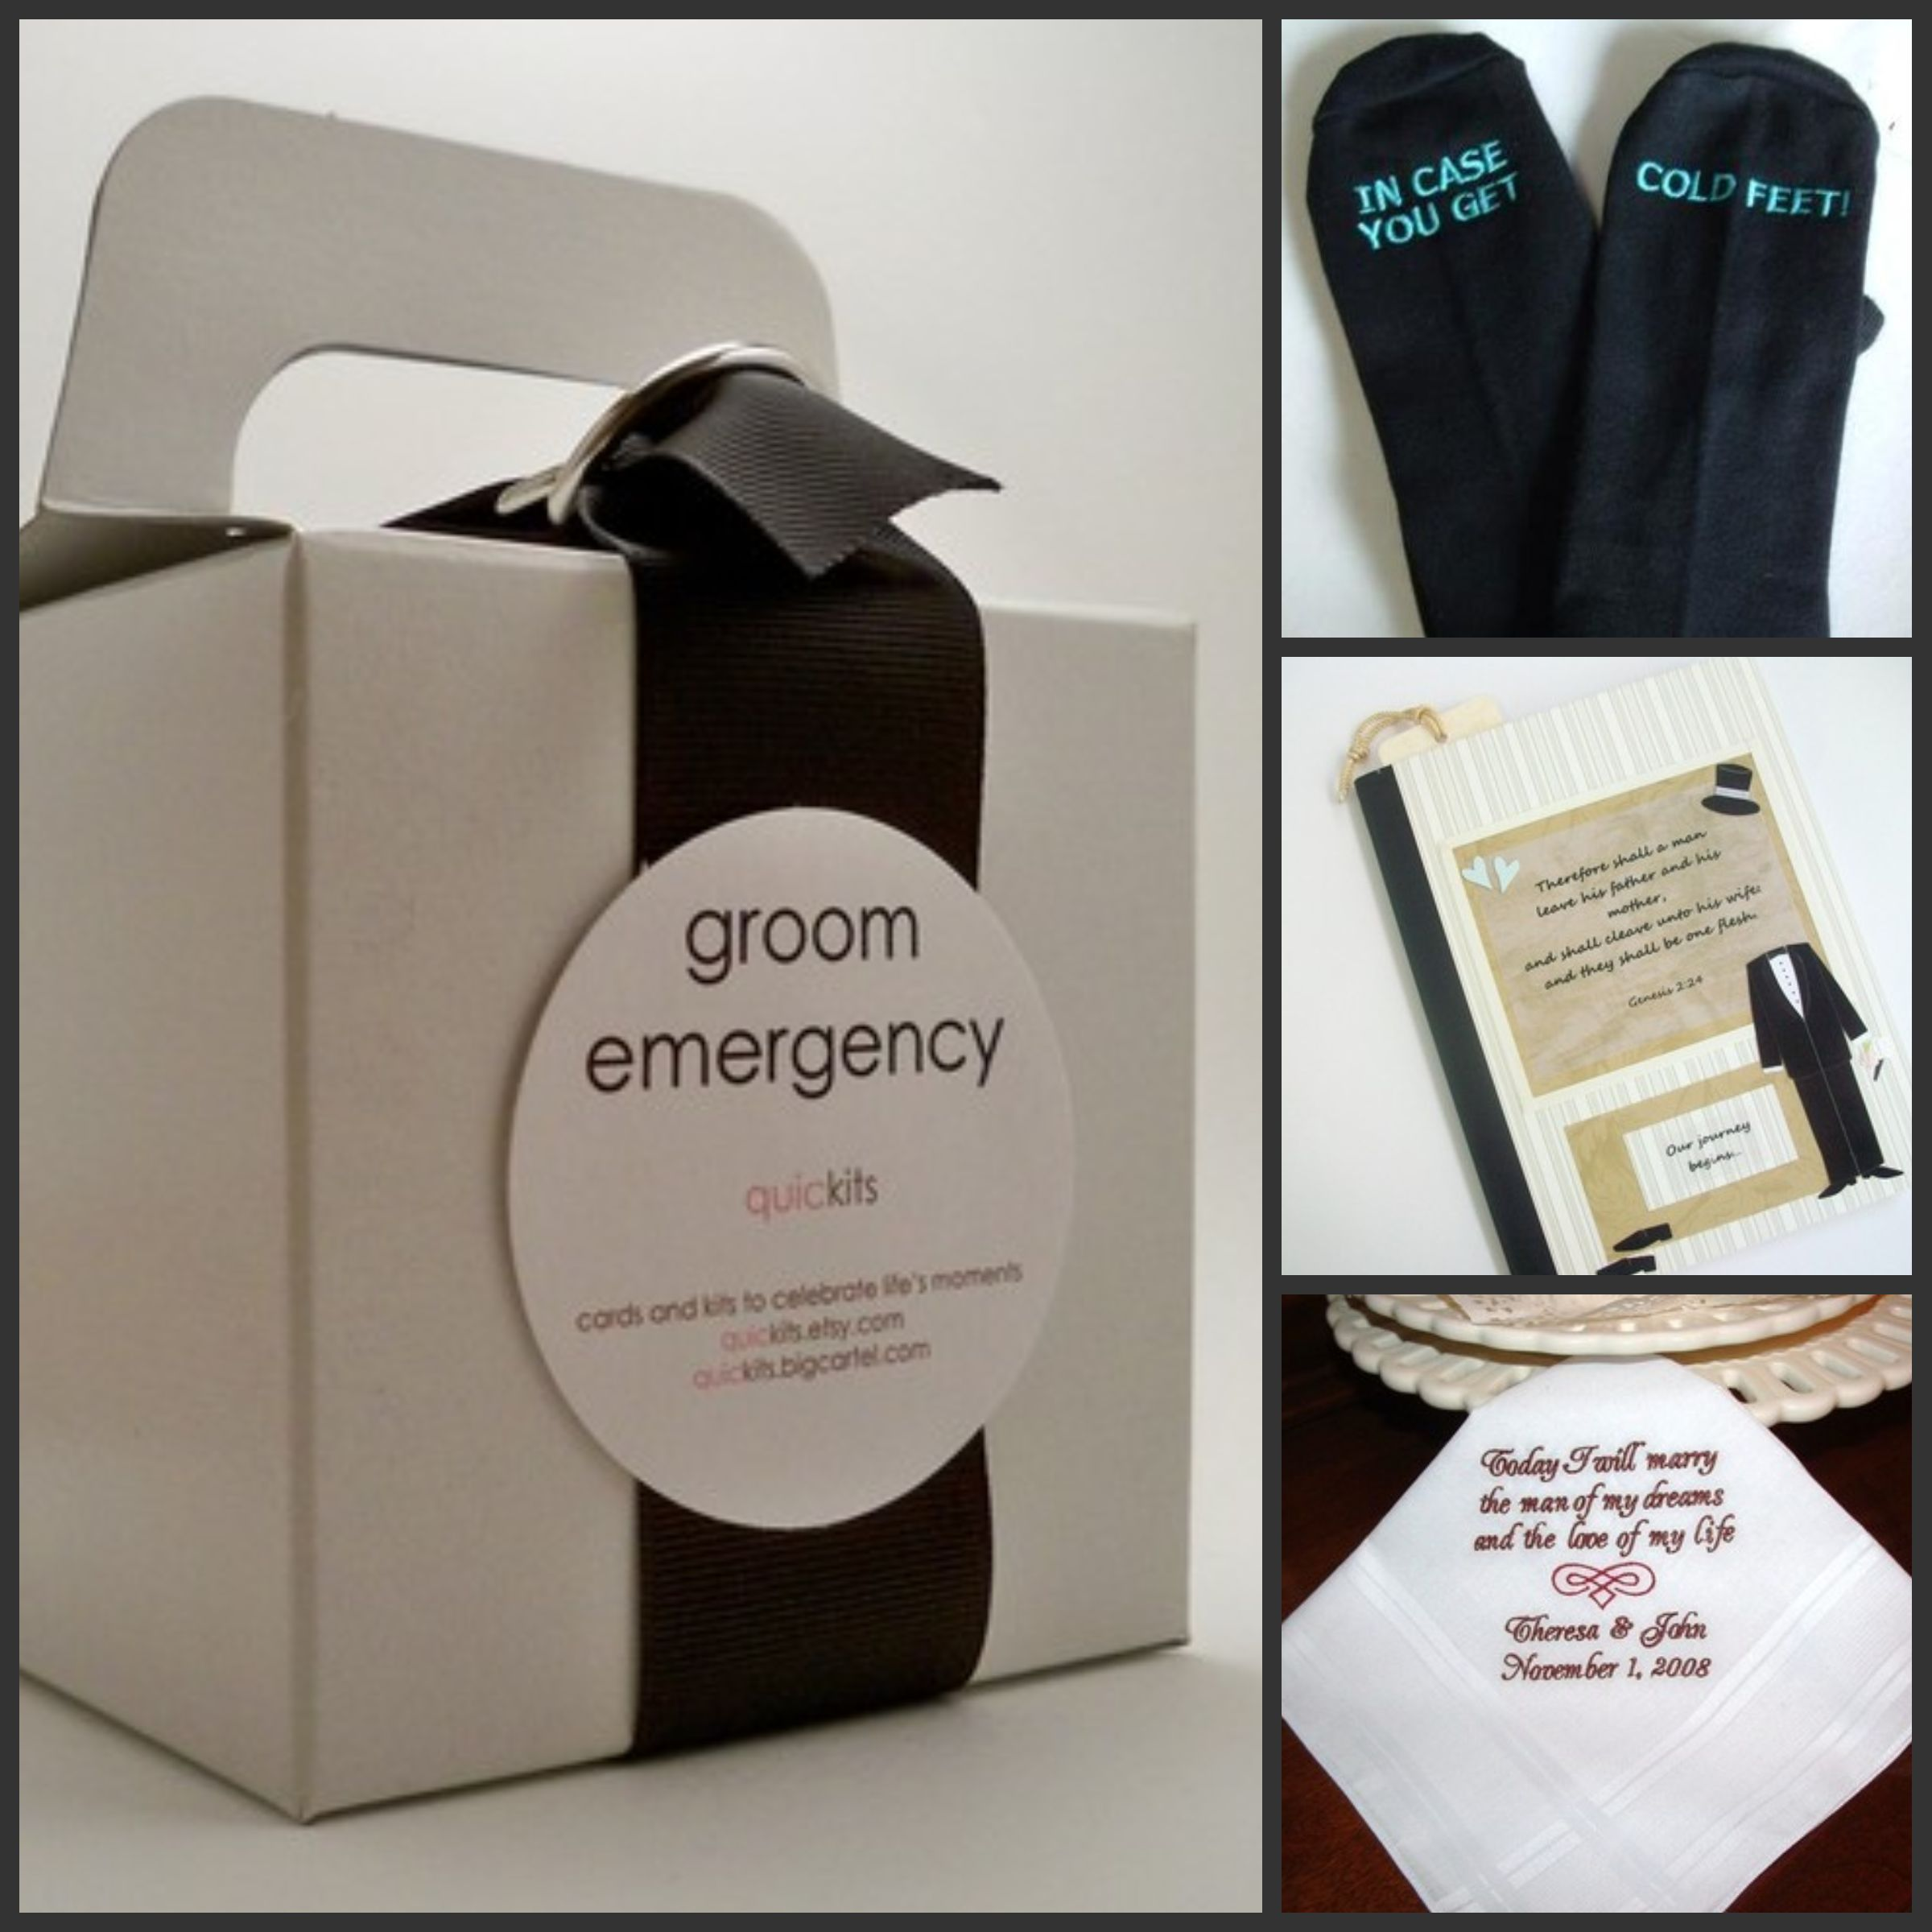 Wedding Gift For Groom And Bride : personal gifts for your groom clockwise from left groom emergency kit ...